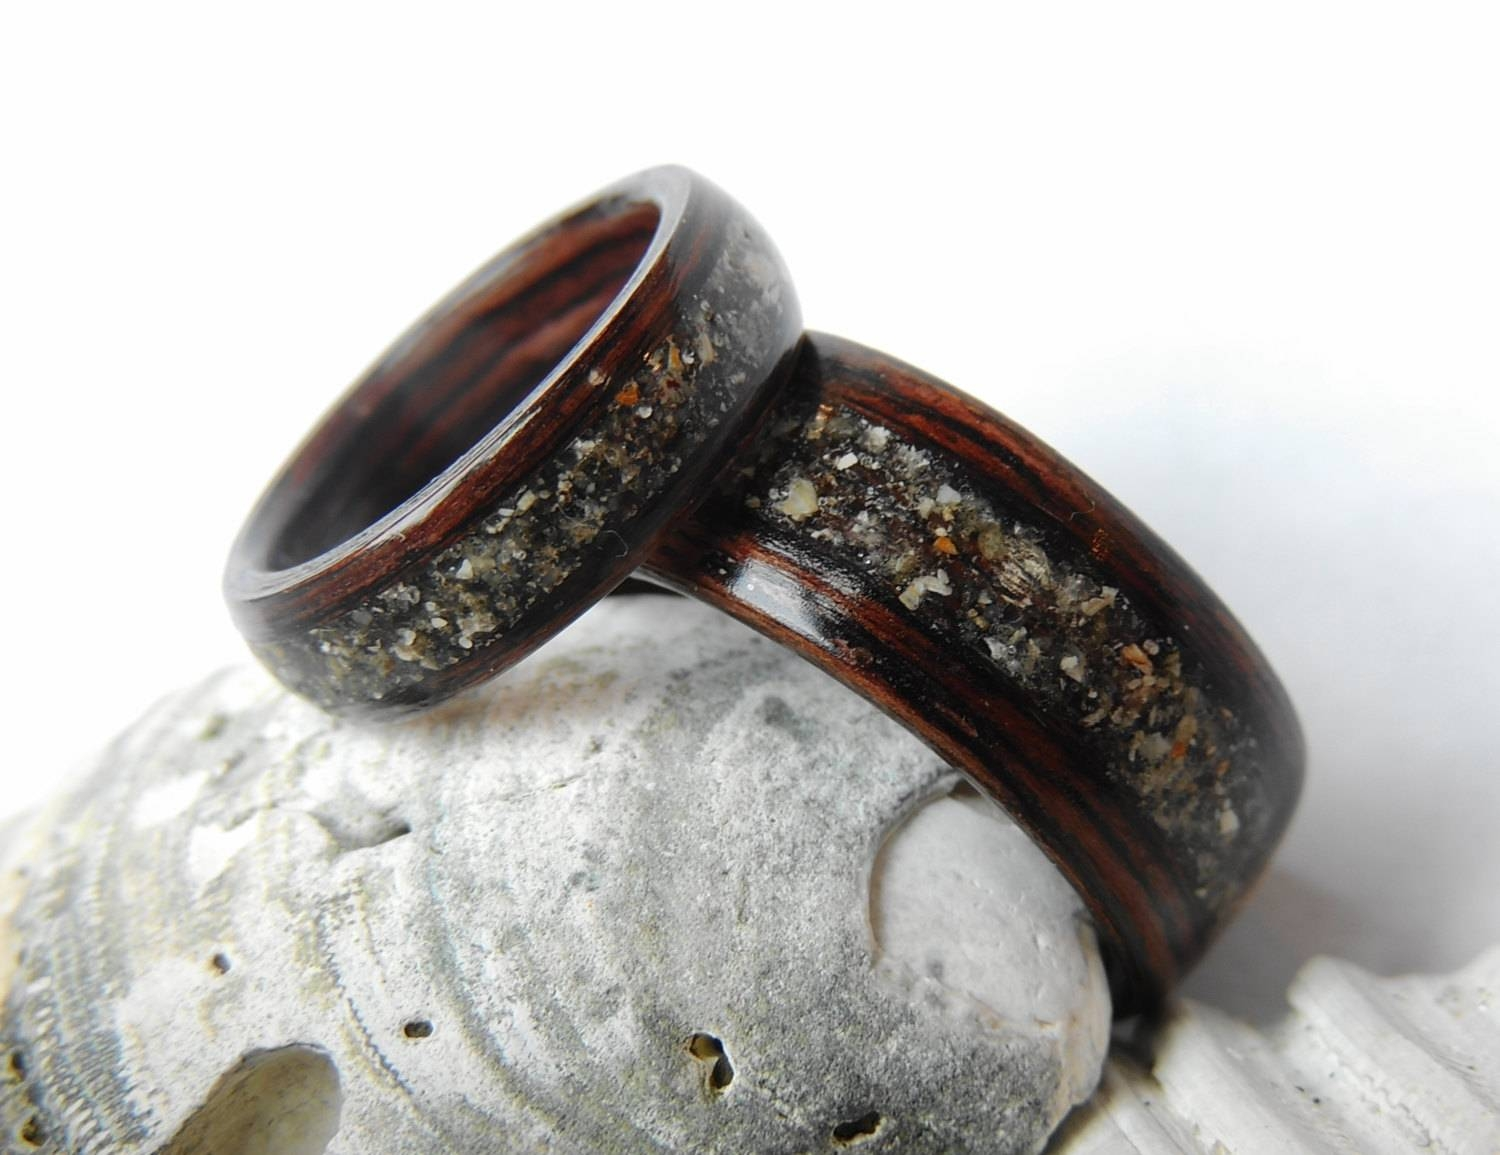 craft grey about zebrano ring dinosaur bentwood maple silver rings things wood me bone bent with meteorite wedding rosewood inlays wooden and other